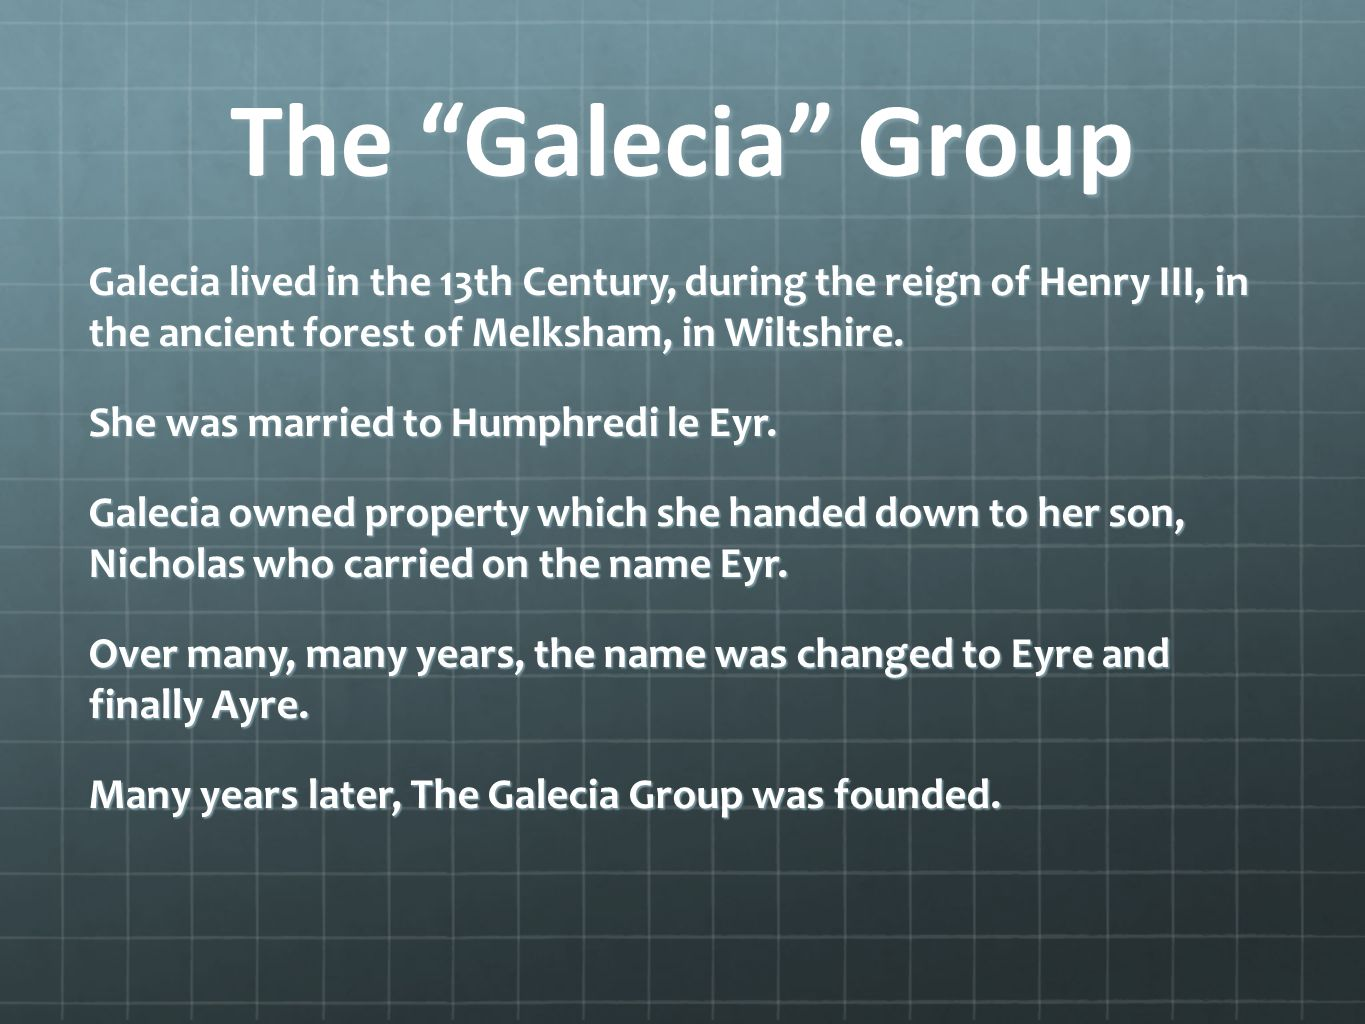 The Galecia Group Galecia lived in the 13th Century, during the reign of Henry III, in the ancient forest of Melksham, in Wiltshire.